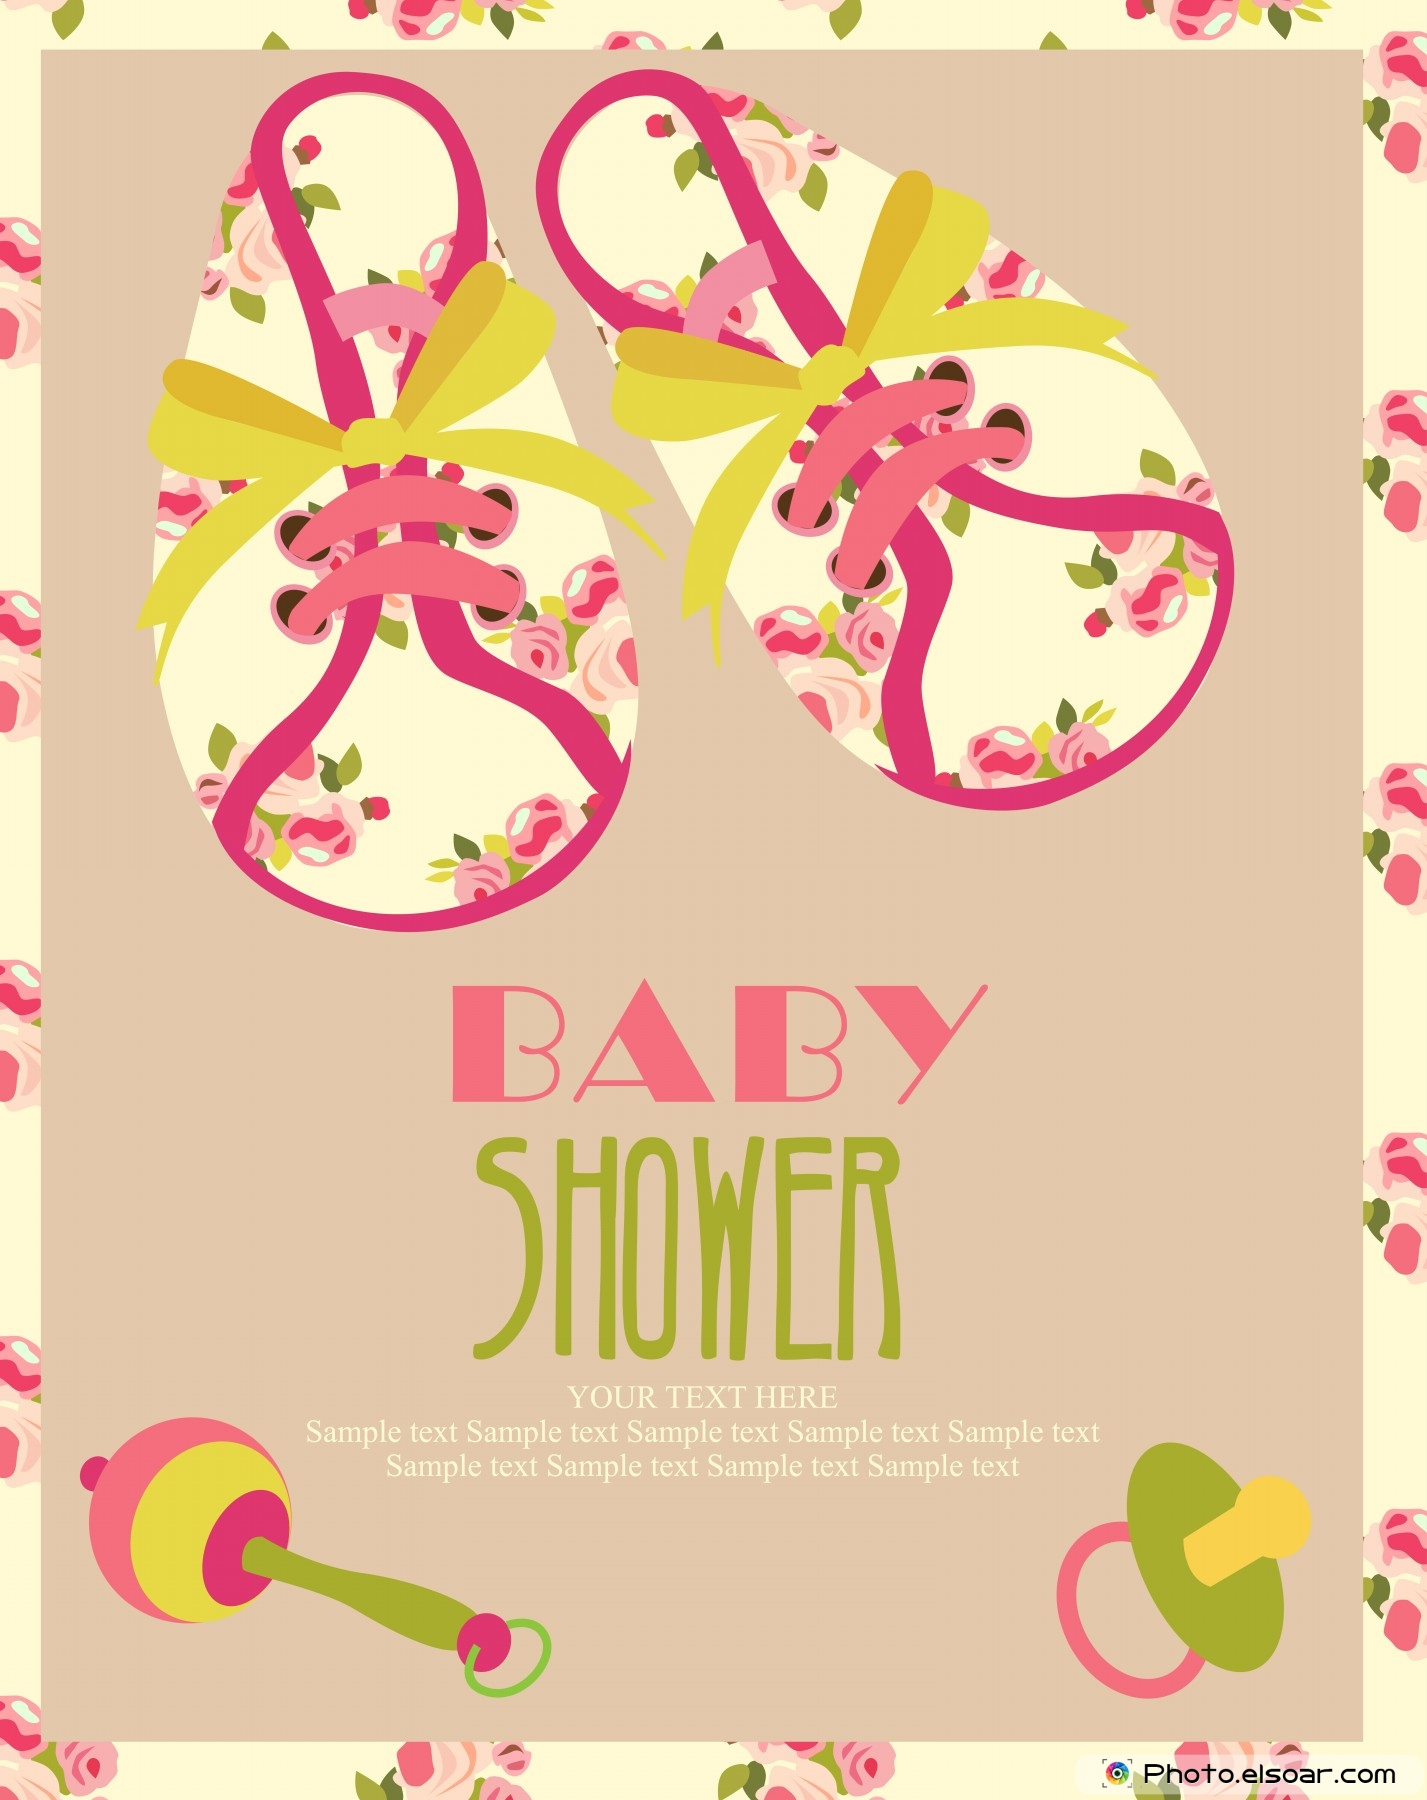 Amazing New Printable Baby Shower Cards | Sarah-Paulson with Printable Baby Shower Cards